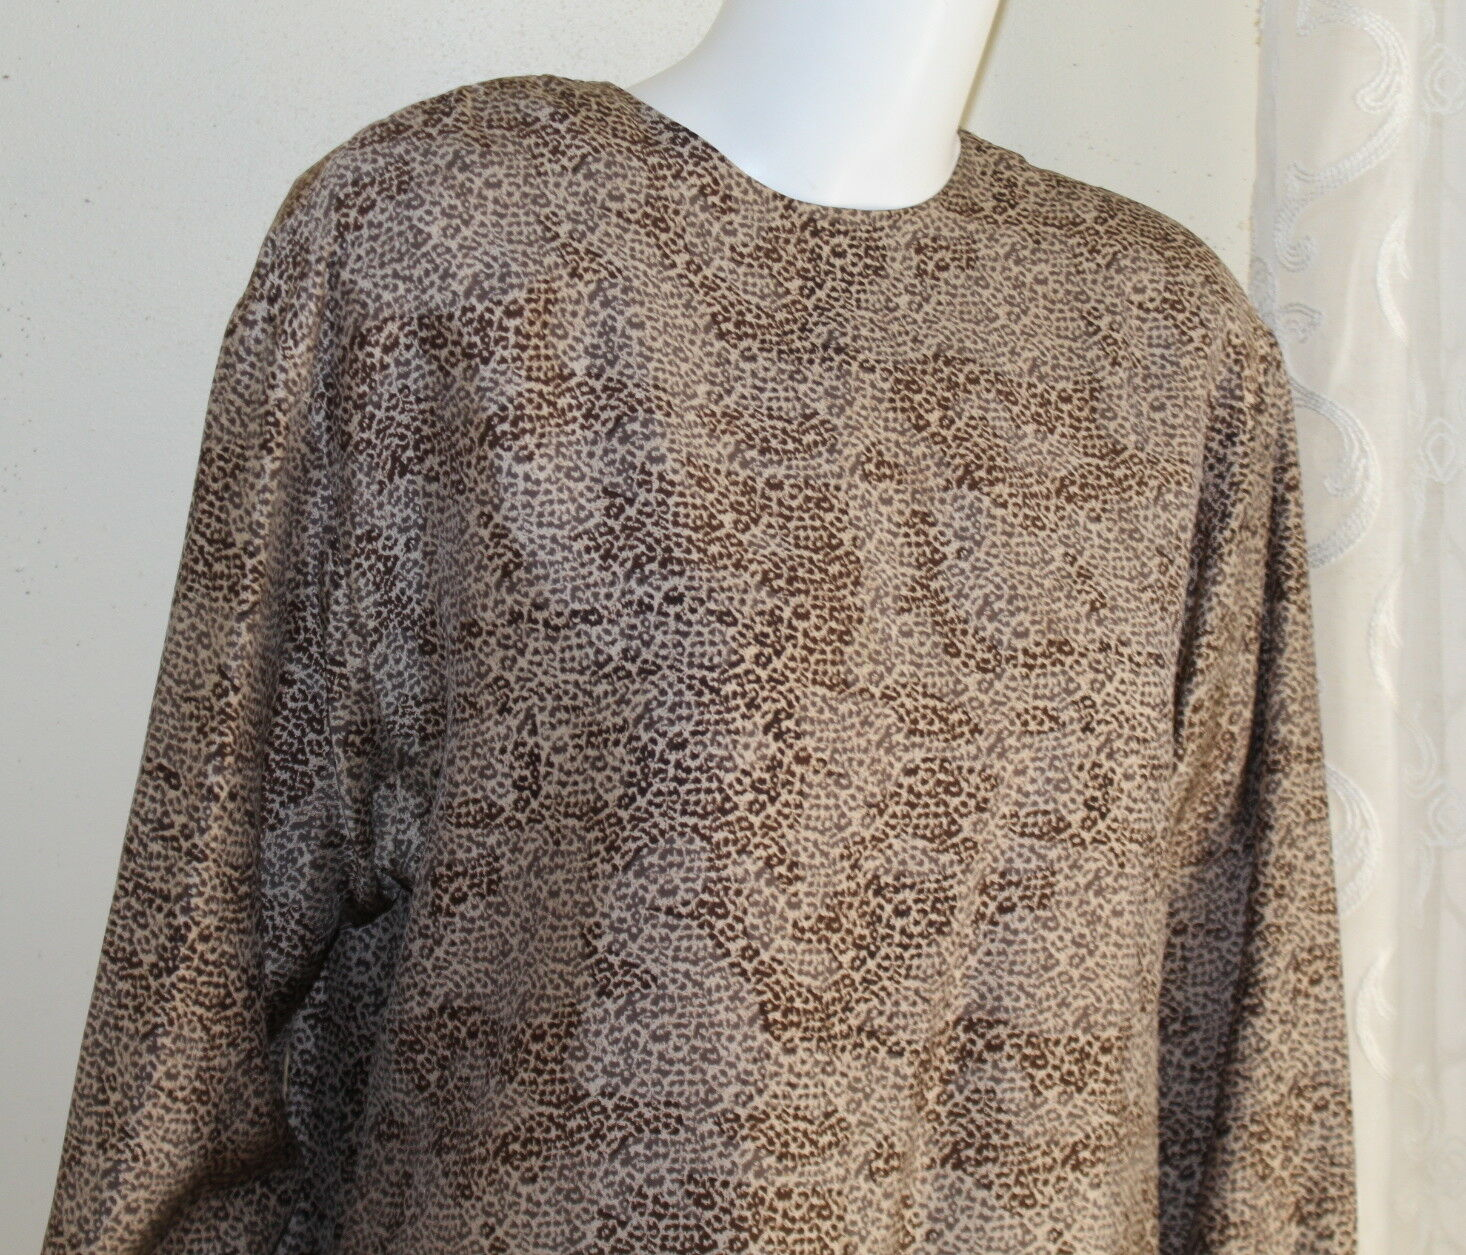 Ellen Tracy 12 Exquisite Silk Blouse Dreamy Animal Print Classic Shirt Top Tunic